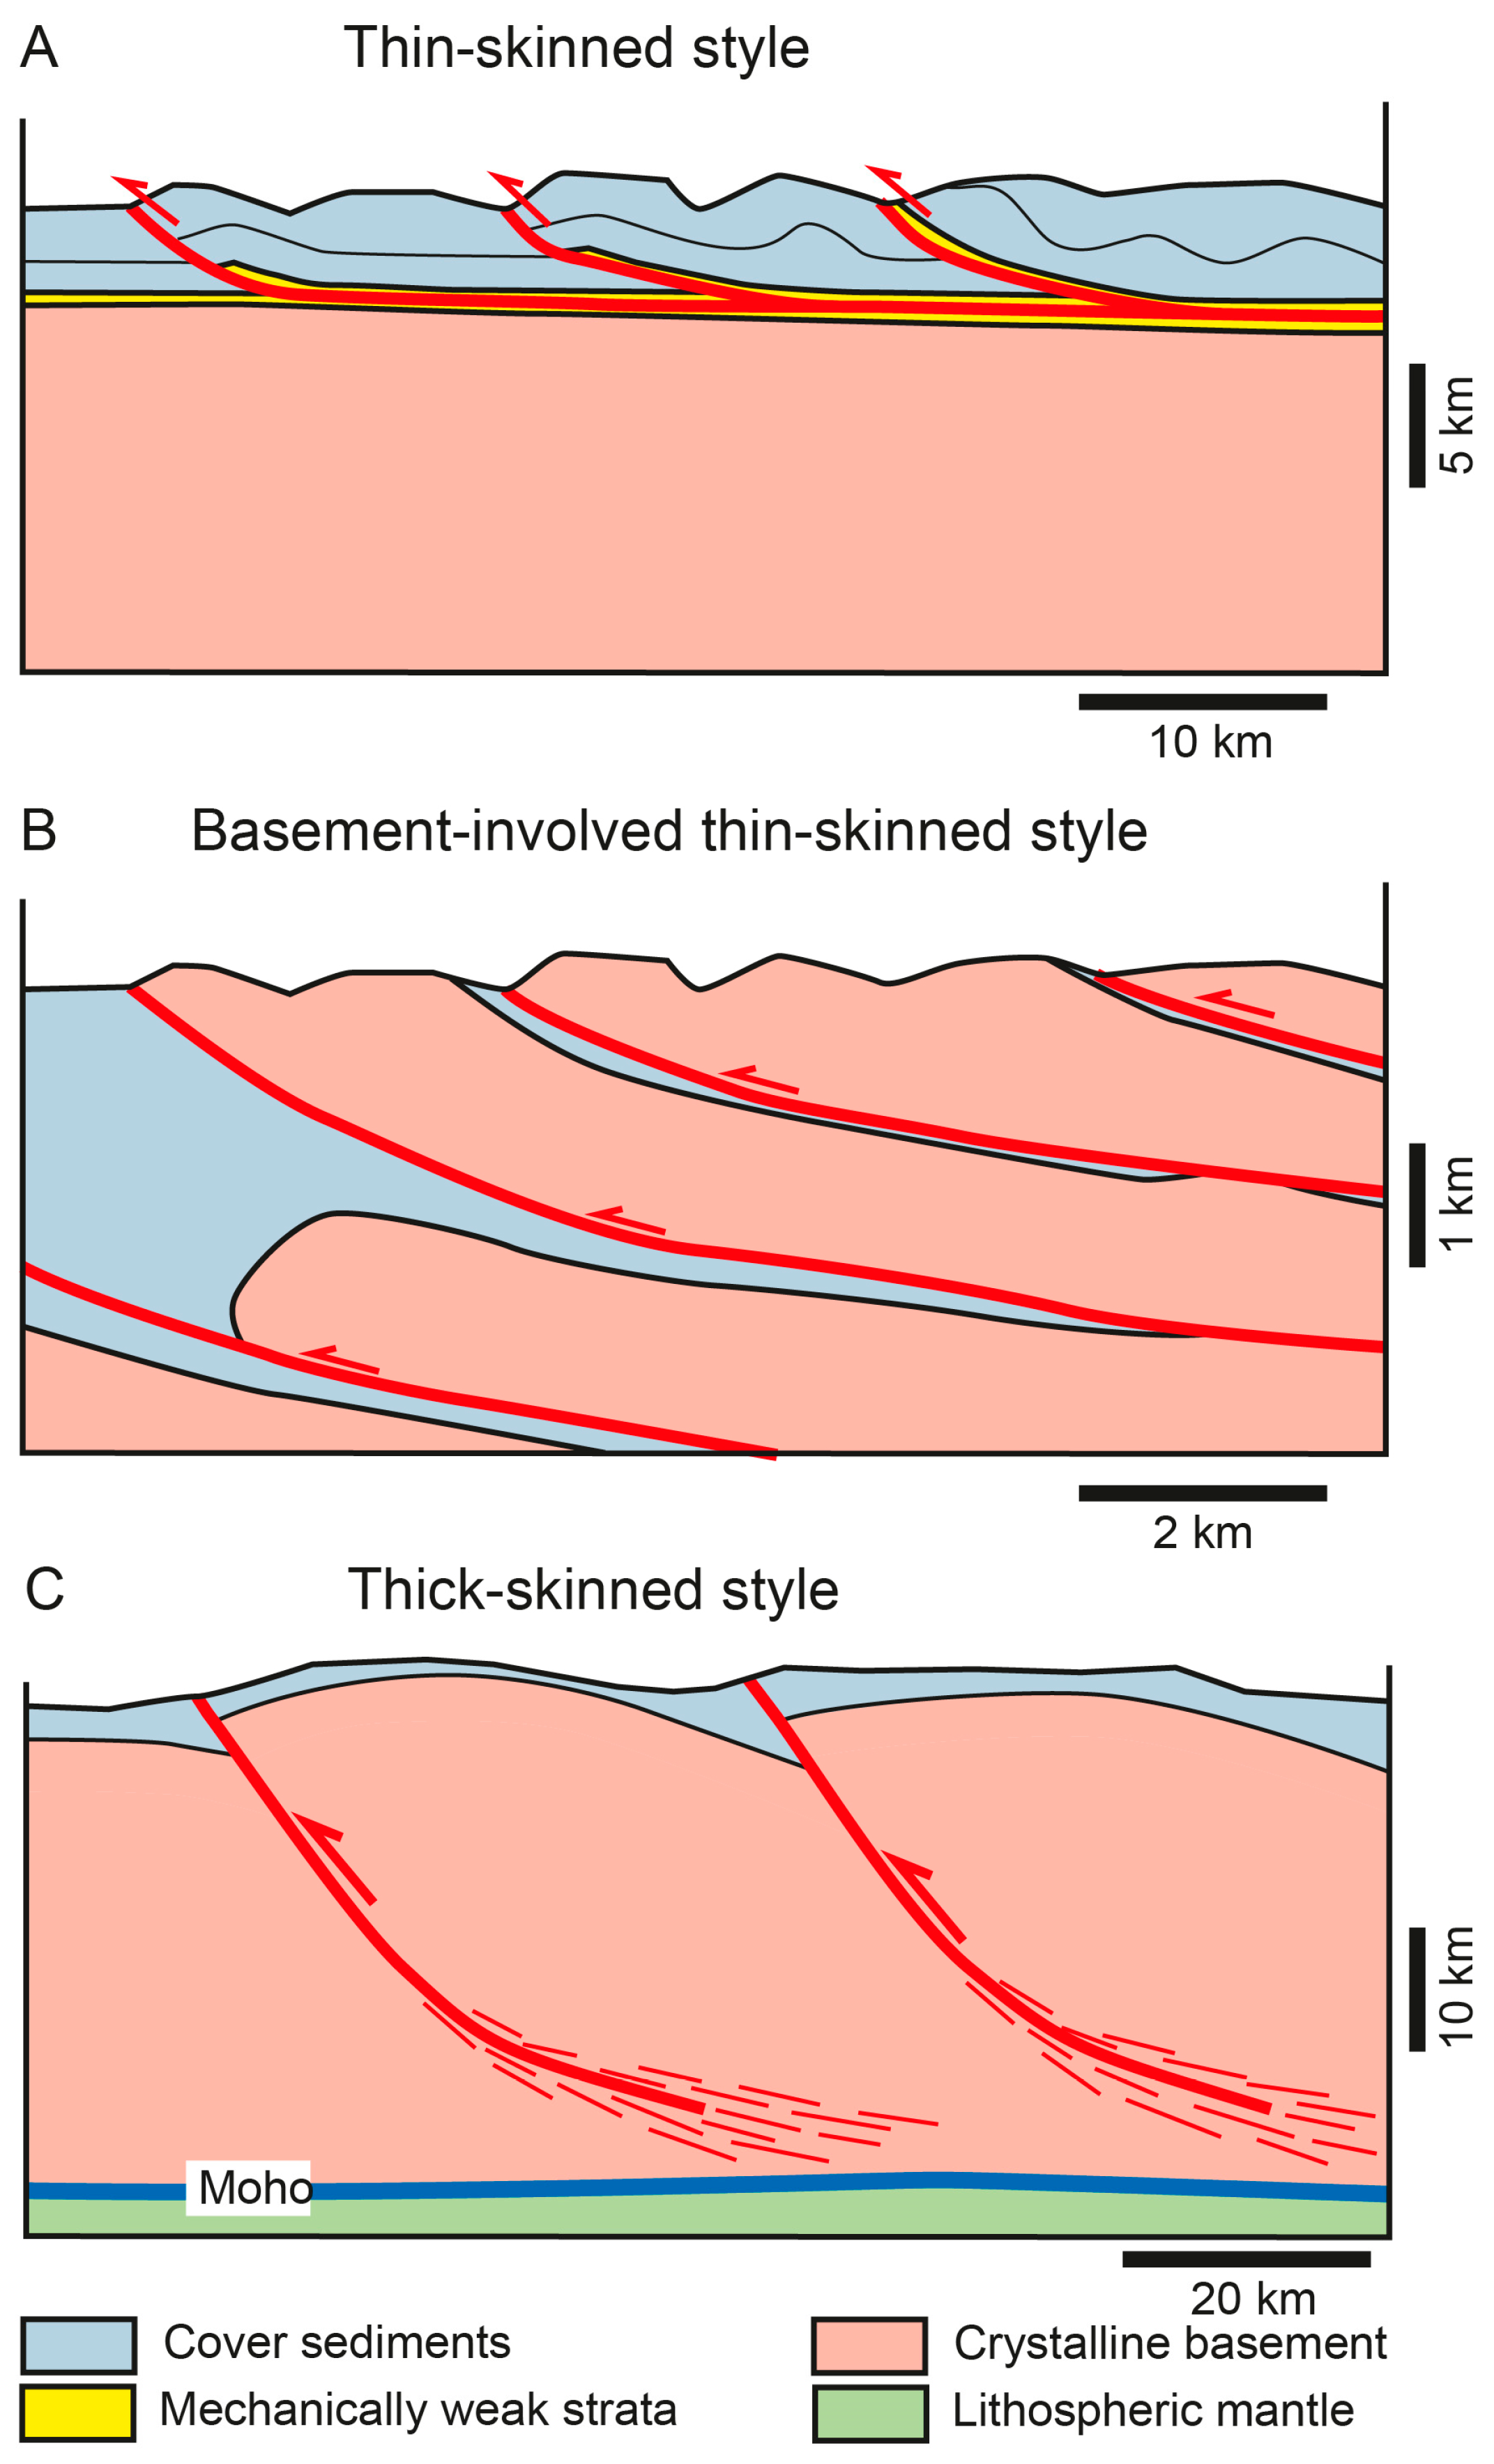 Geosciences | Free Full-Text | Thick-Skinned and Thin-Skinned